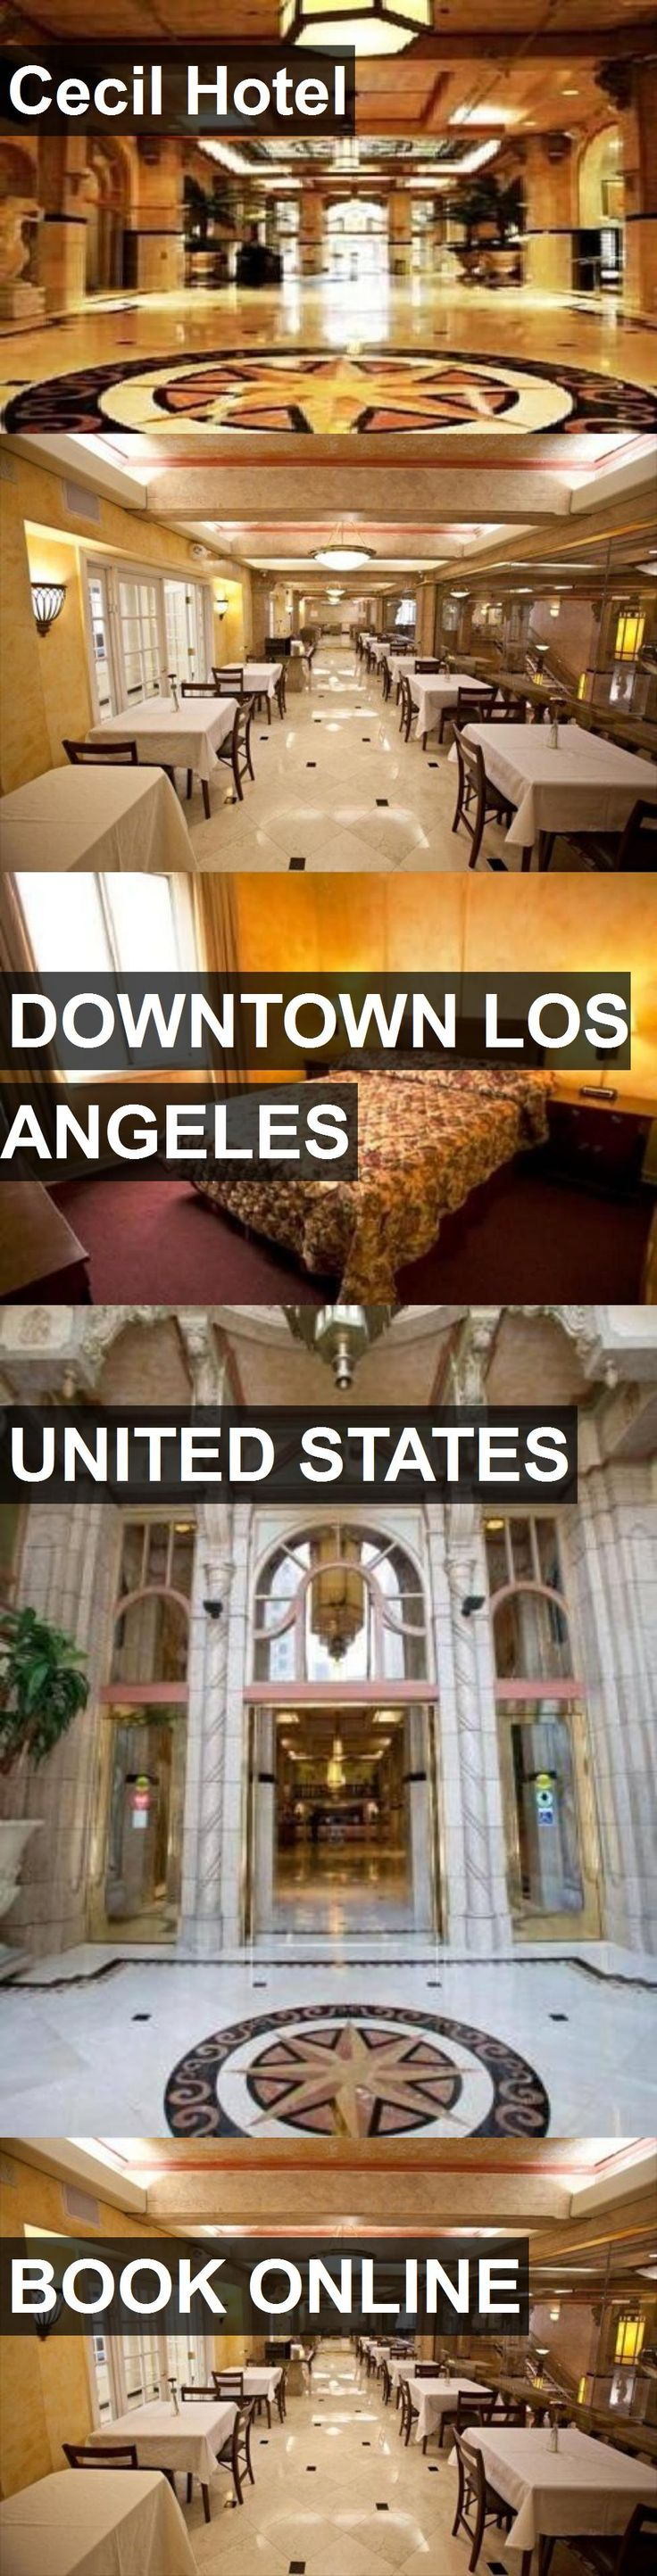 Cecil Hotel in Downtown Los Angeles, United States. For more information, photos, reviews and best prices please follow the link. #UnitedStates #DowntownLosAngeles #travel #vacation #hotel